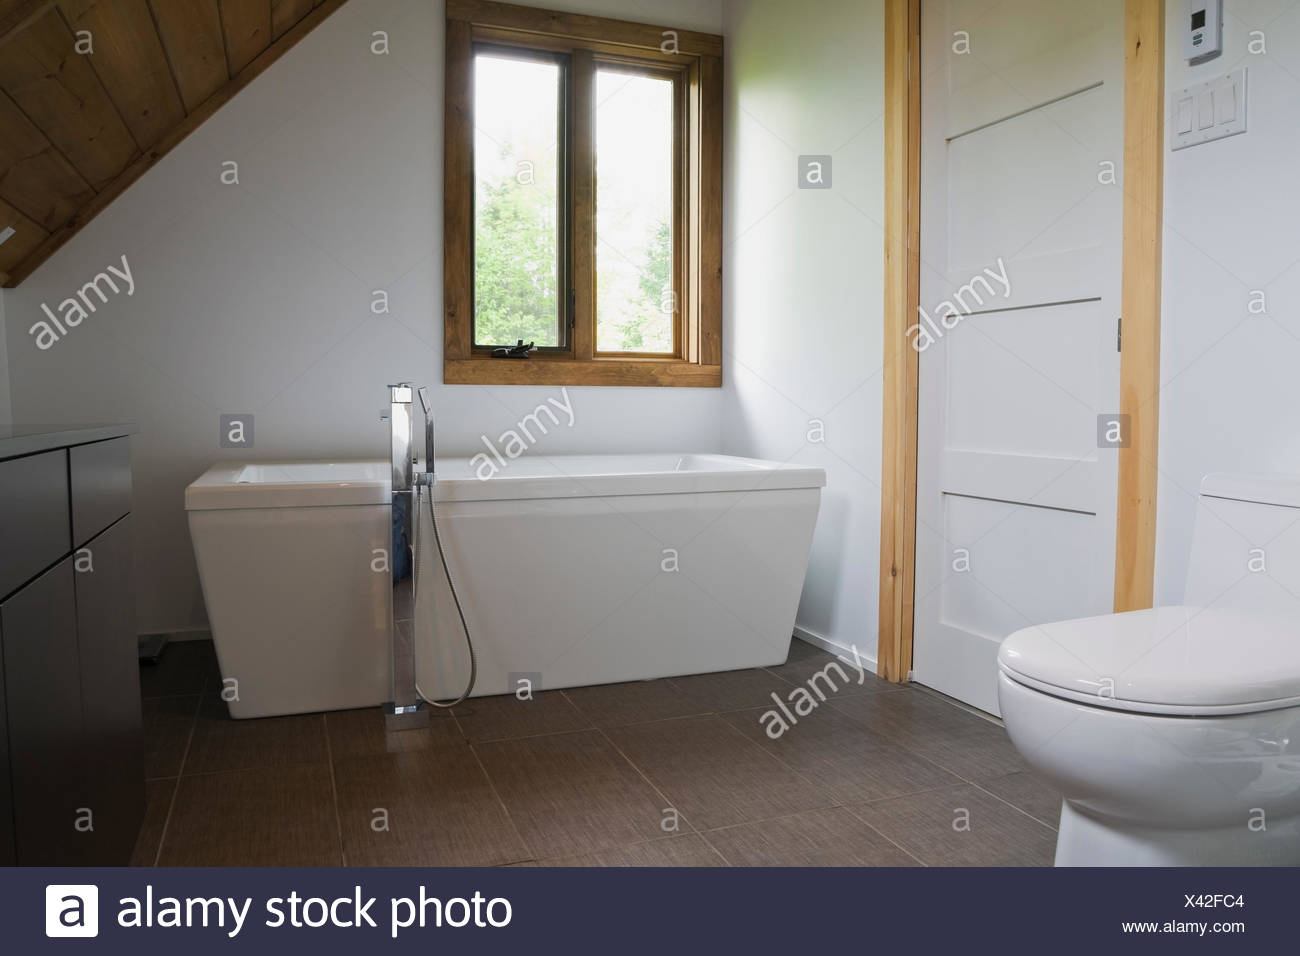 https www alamy com bathroom with grey ceramic tile floor white porcelain toilet and freestanding bathtub in cottage style log home quebec canada image277880516 html